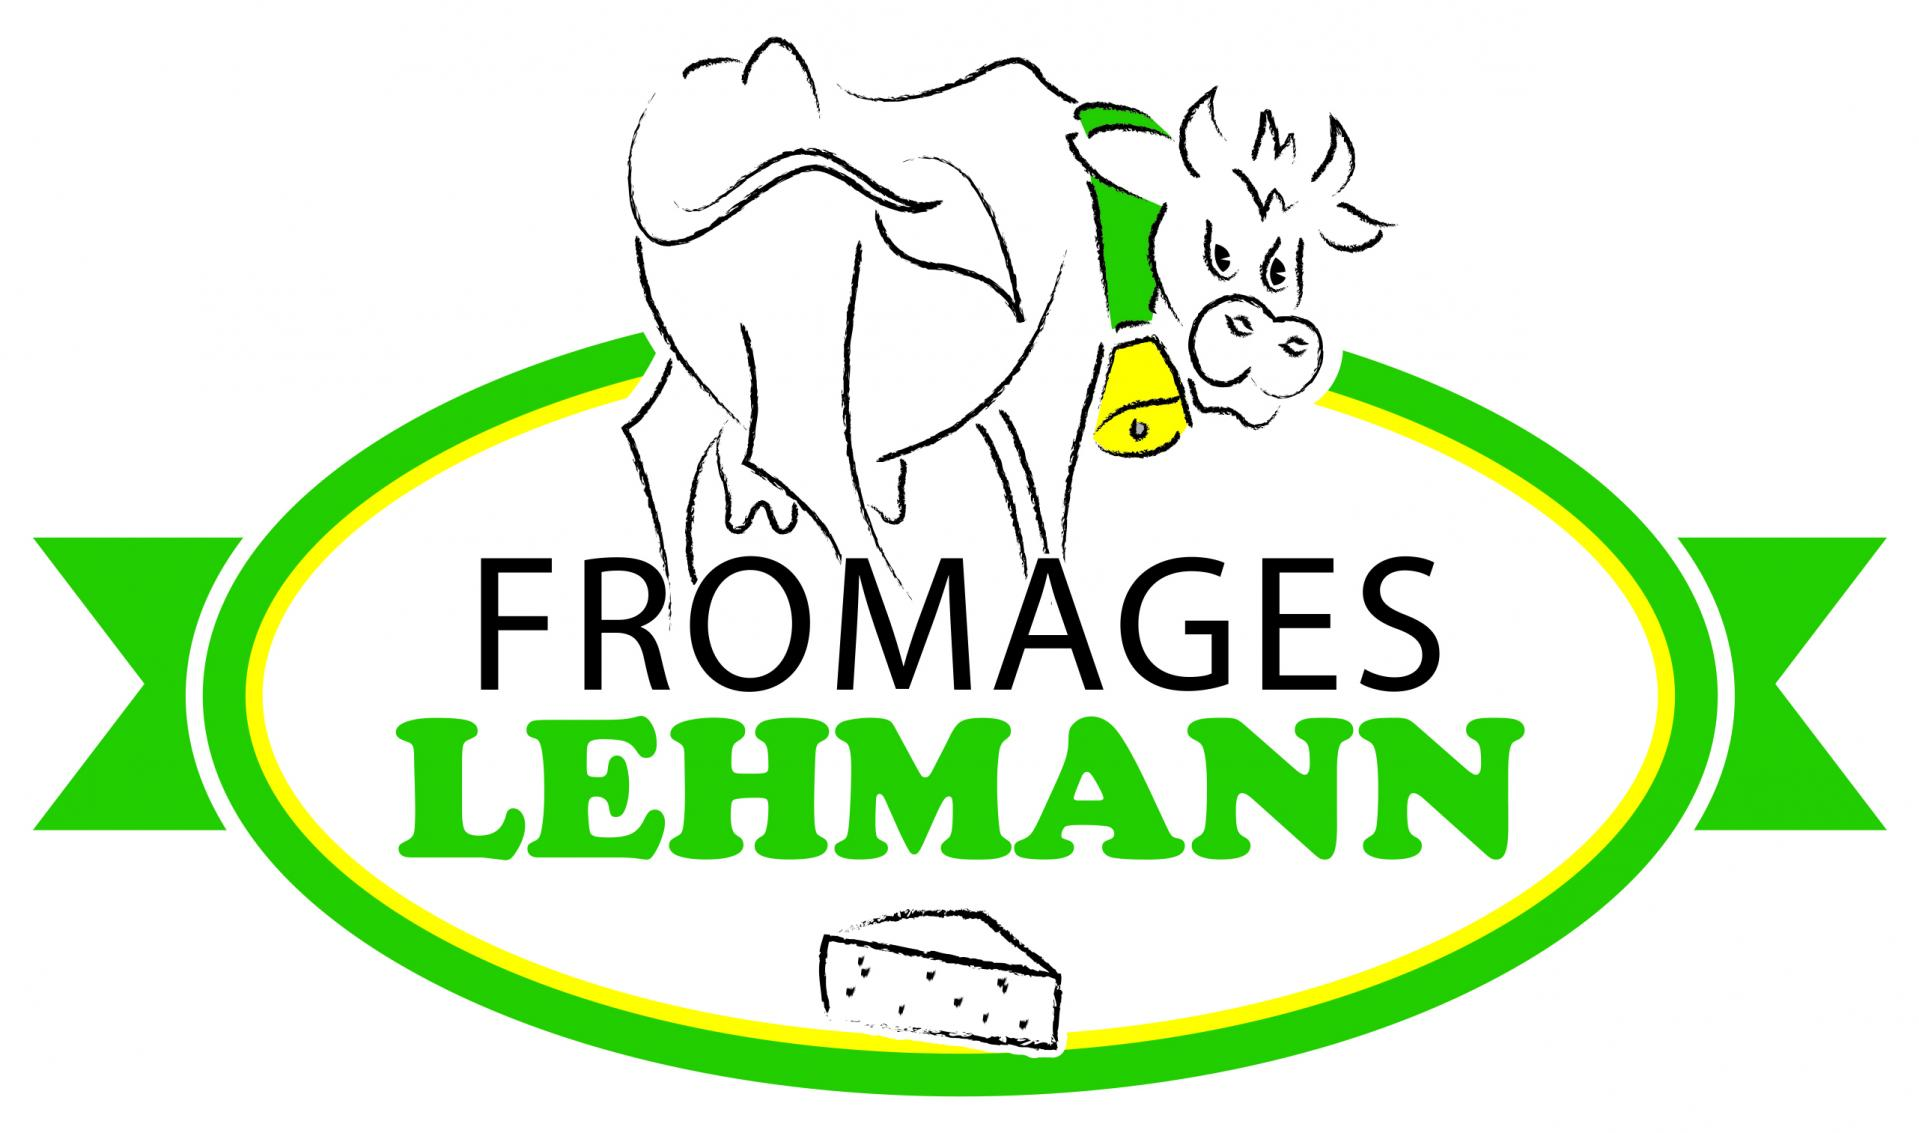 Fromages lehmann logo